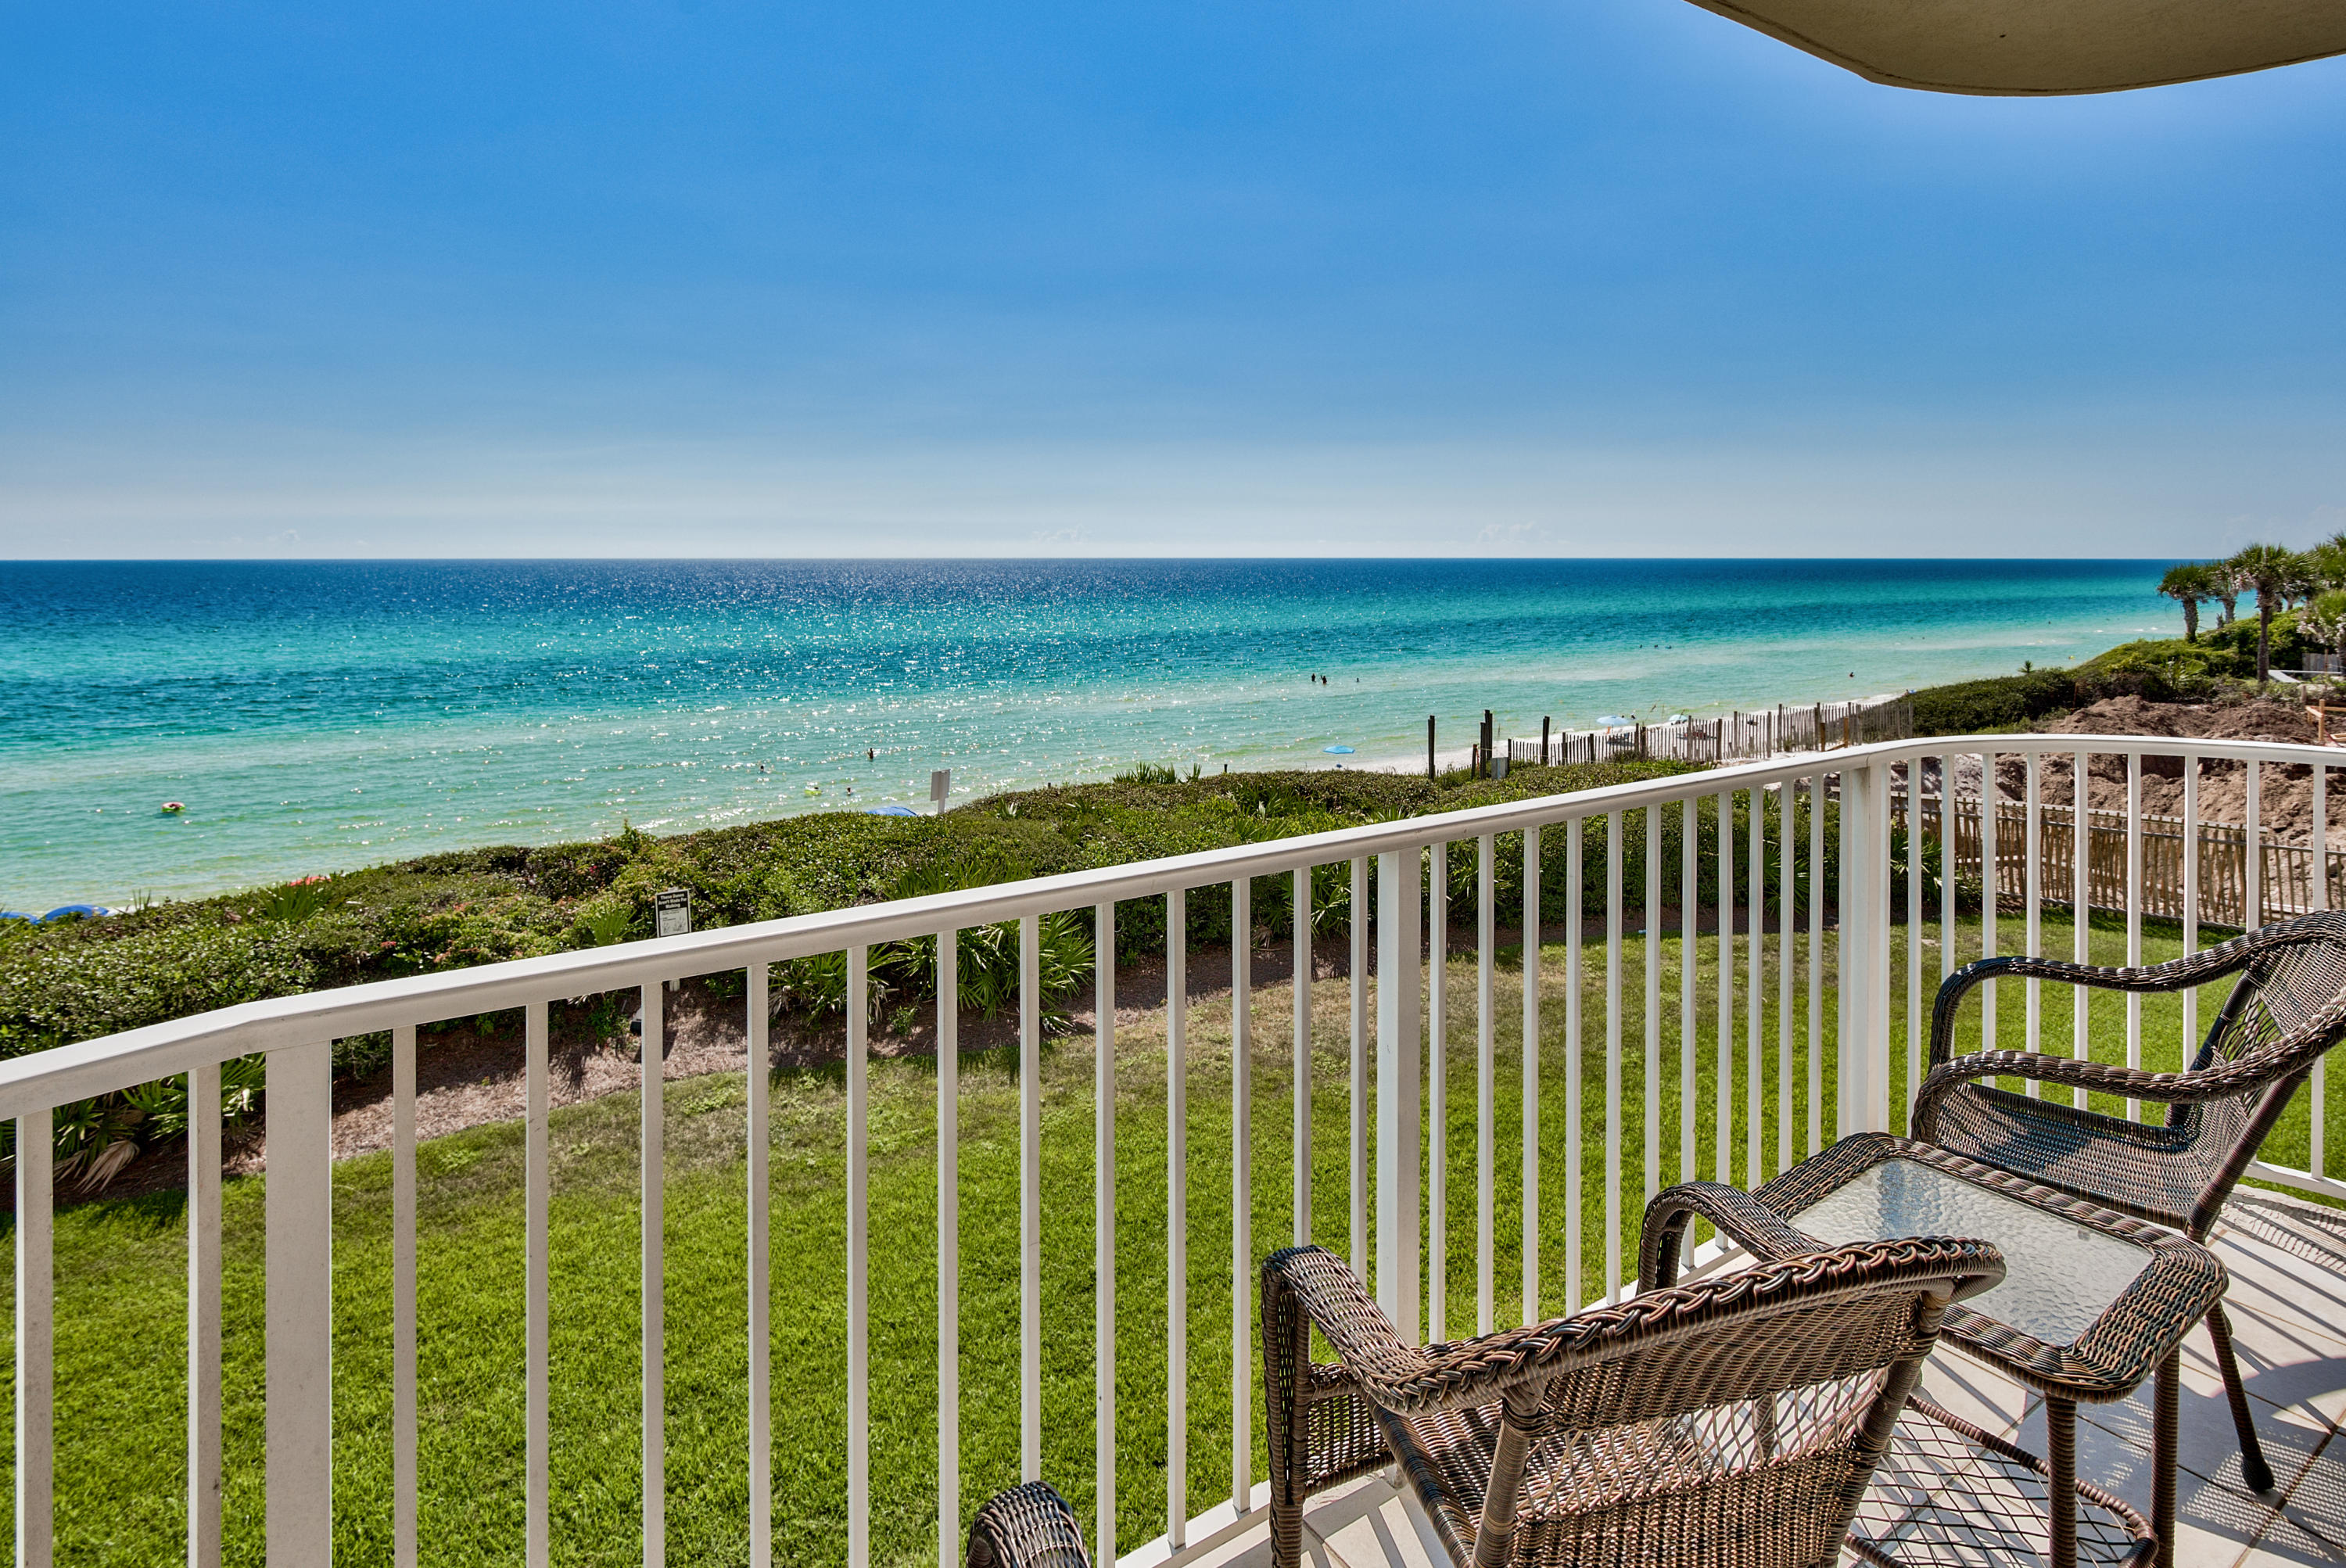 8600 Co Highway 30-A,Inlet Beach,Florida 32461,3 Bedrooms Bedrooms,3 BathroomsBathrooms,Condominium,Co Highway 30-A,20131126143817002353000000